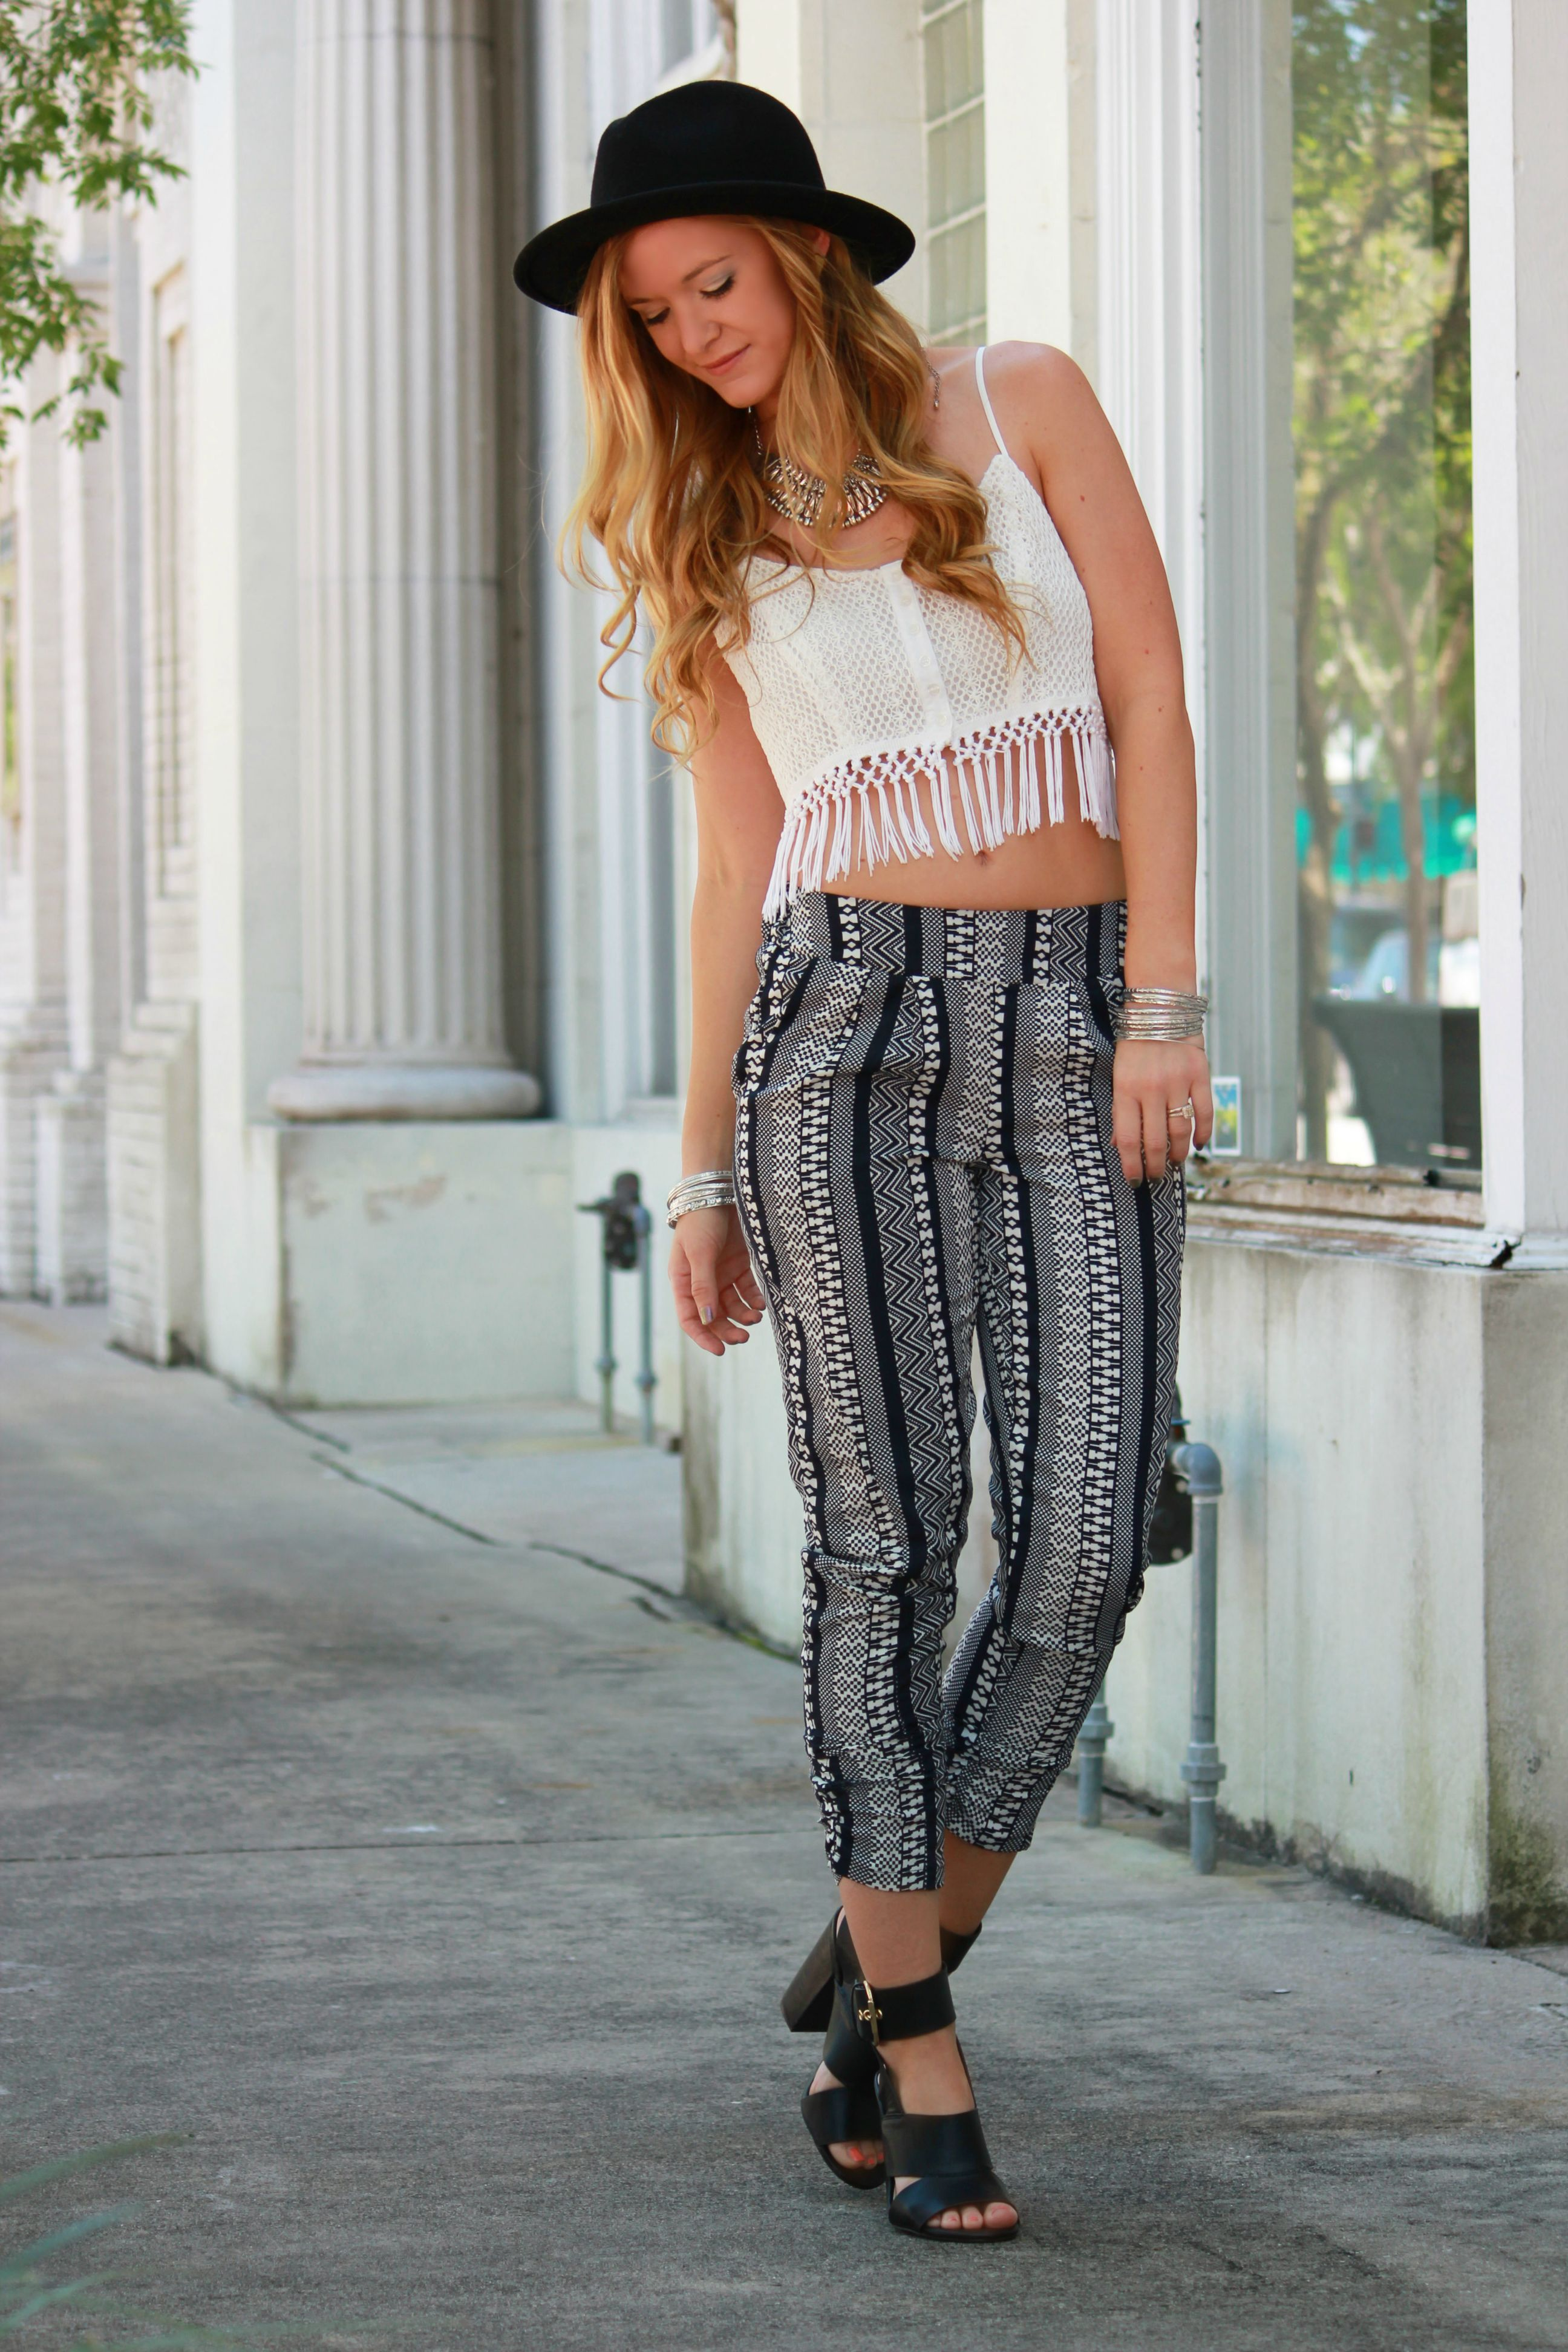 charlotte russe jogger pants, bethany monta collection, aeropostale crop top bethany monta top, boho chic, boho outfit, casual spring outfit